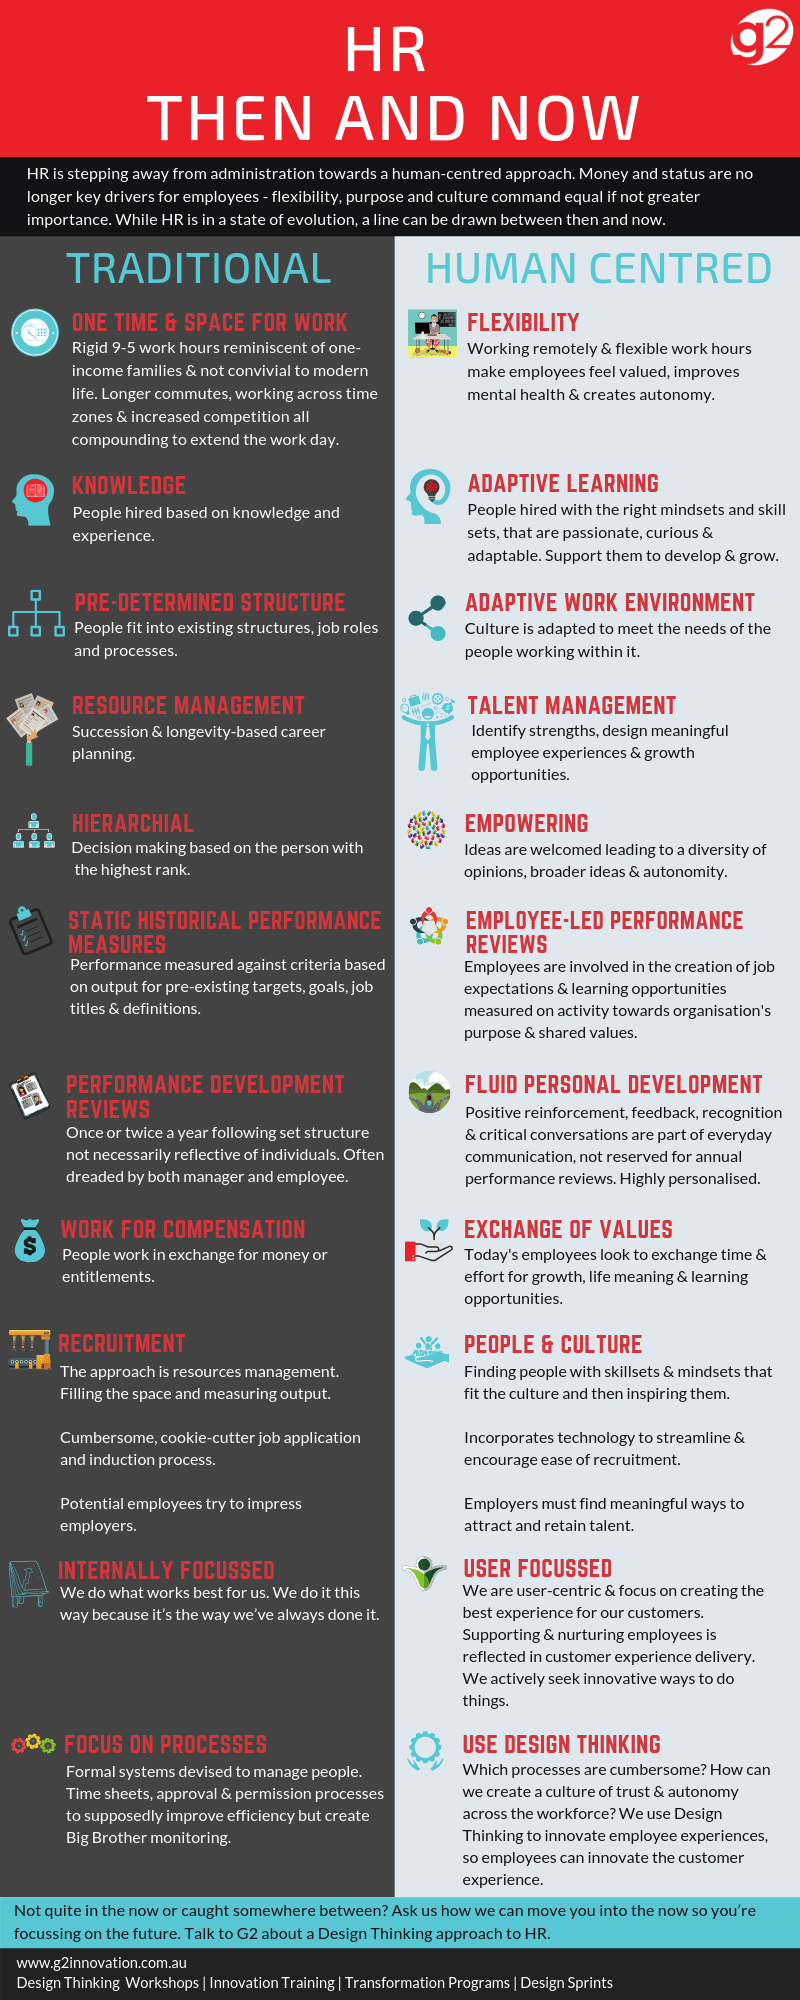 HR_Then & Now Infographic_G2-Innovation-compressed.png